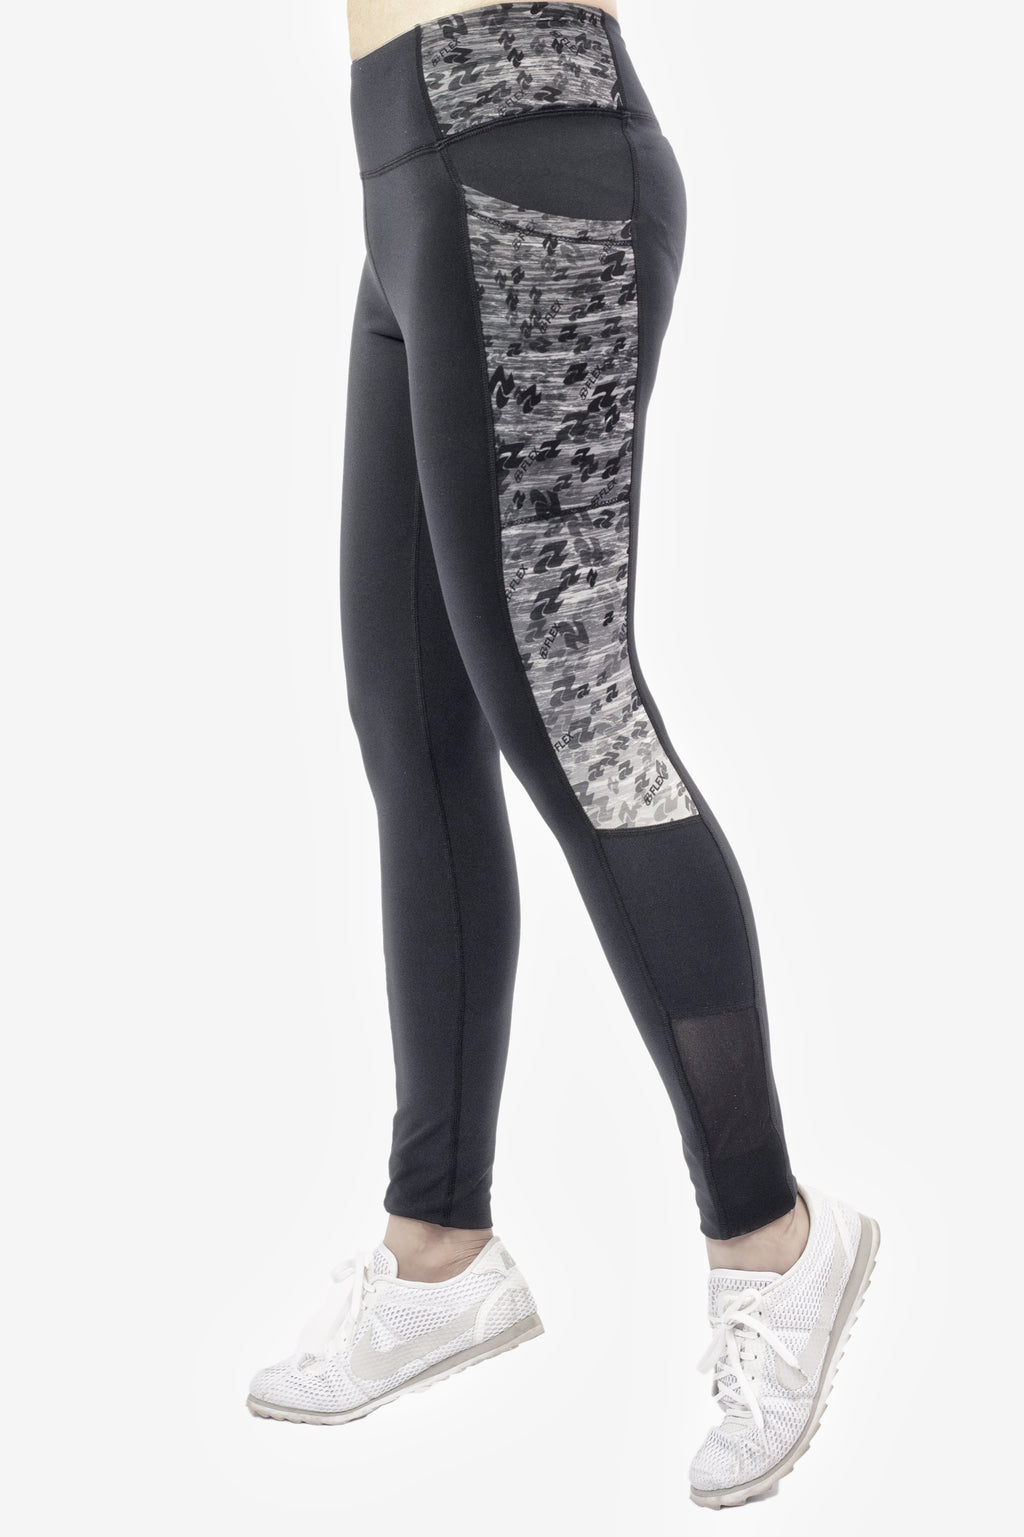 L7001 Full Leggings Sample